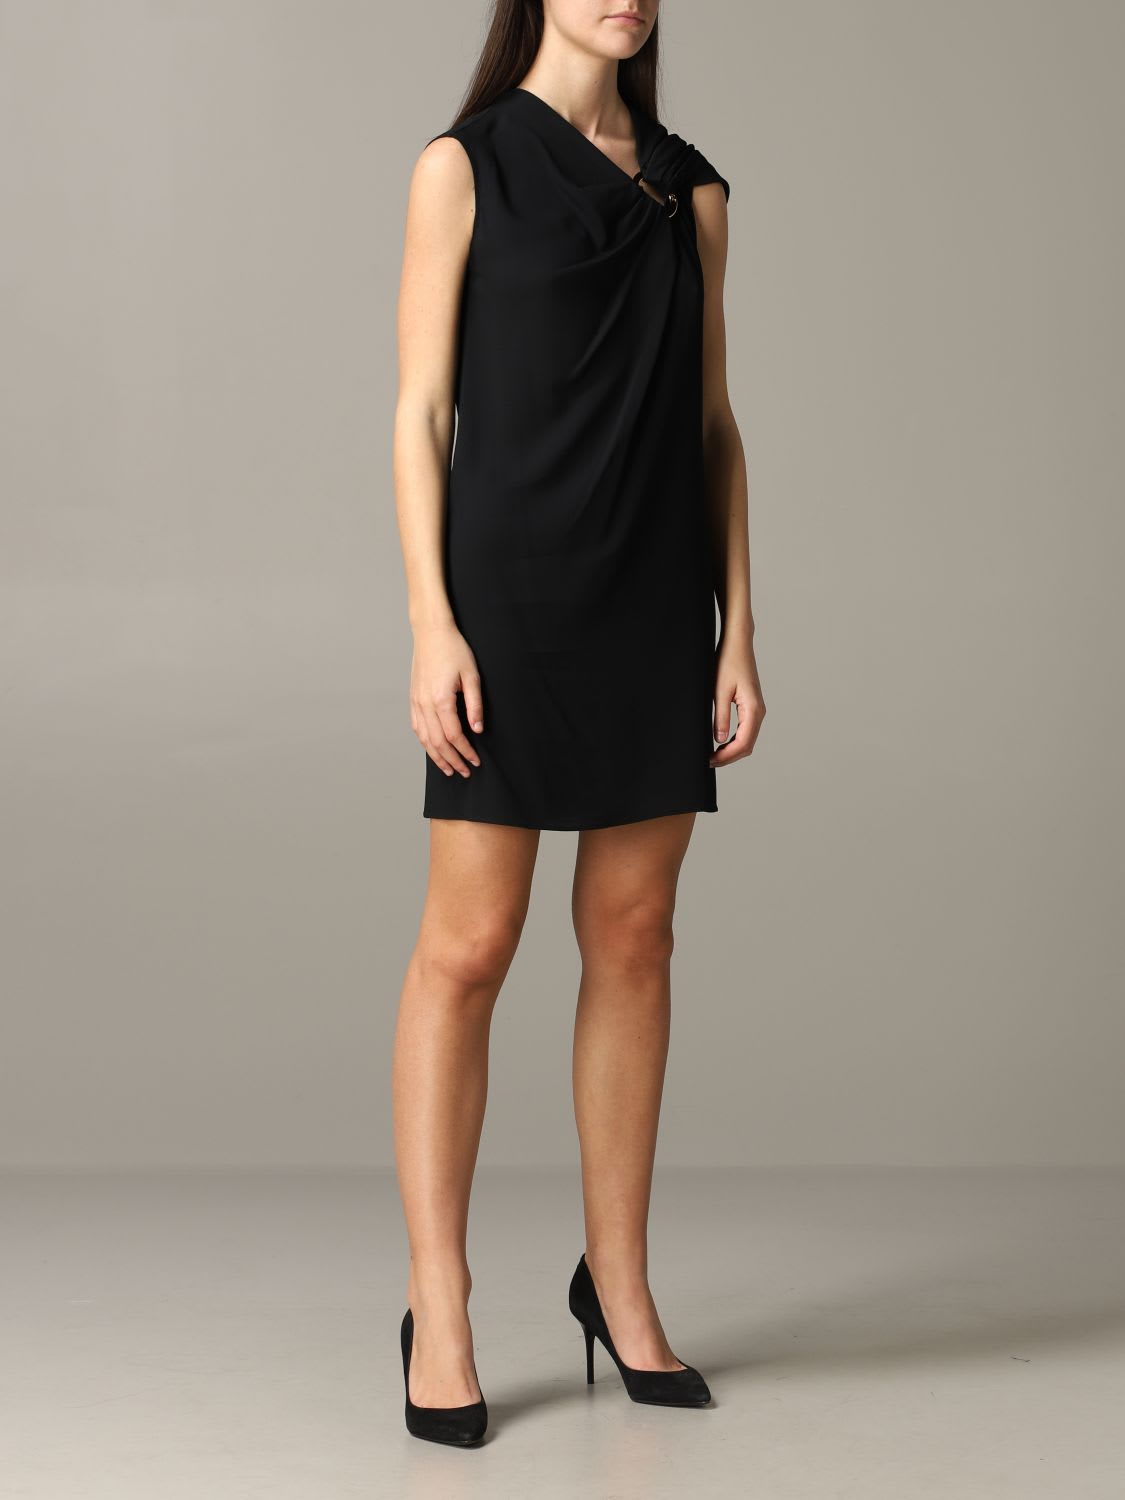 Buy Versace Dress Versace Jersey Dress With Metal Ring online, shop Versace with free shipping